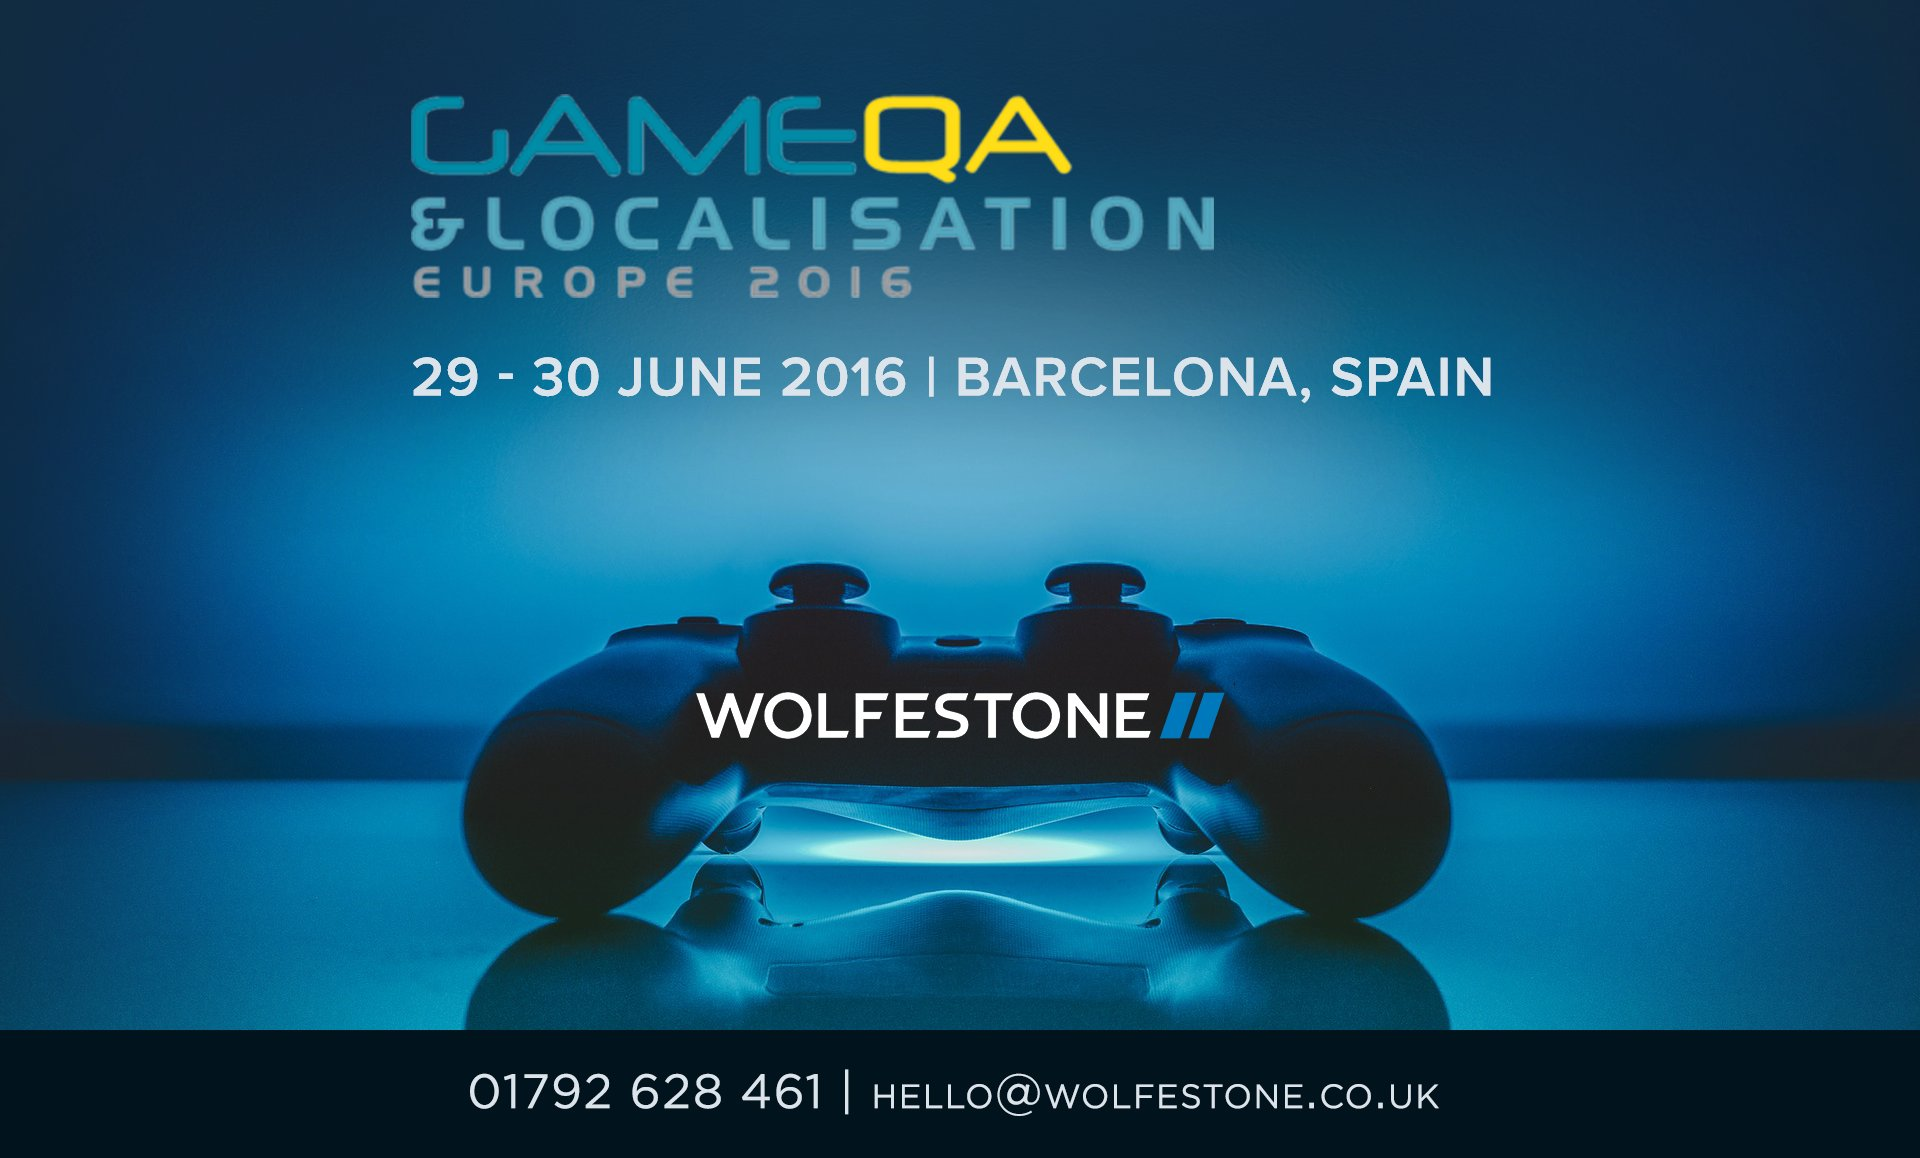 Meet Wolfestone at the Game QA & Localisation Forum on 29-30 June 2016 in Barcelona, Spain; Wolfestone provide an excellent game localisation service in over 200 languages. 01792 628 461. hello@wolfestone.co.uk